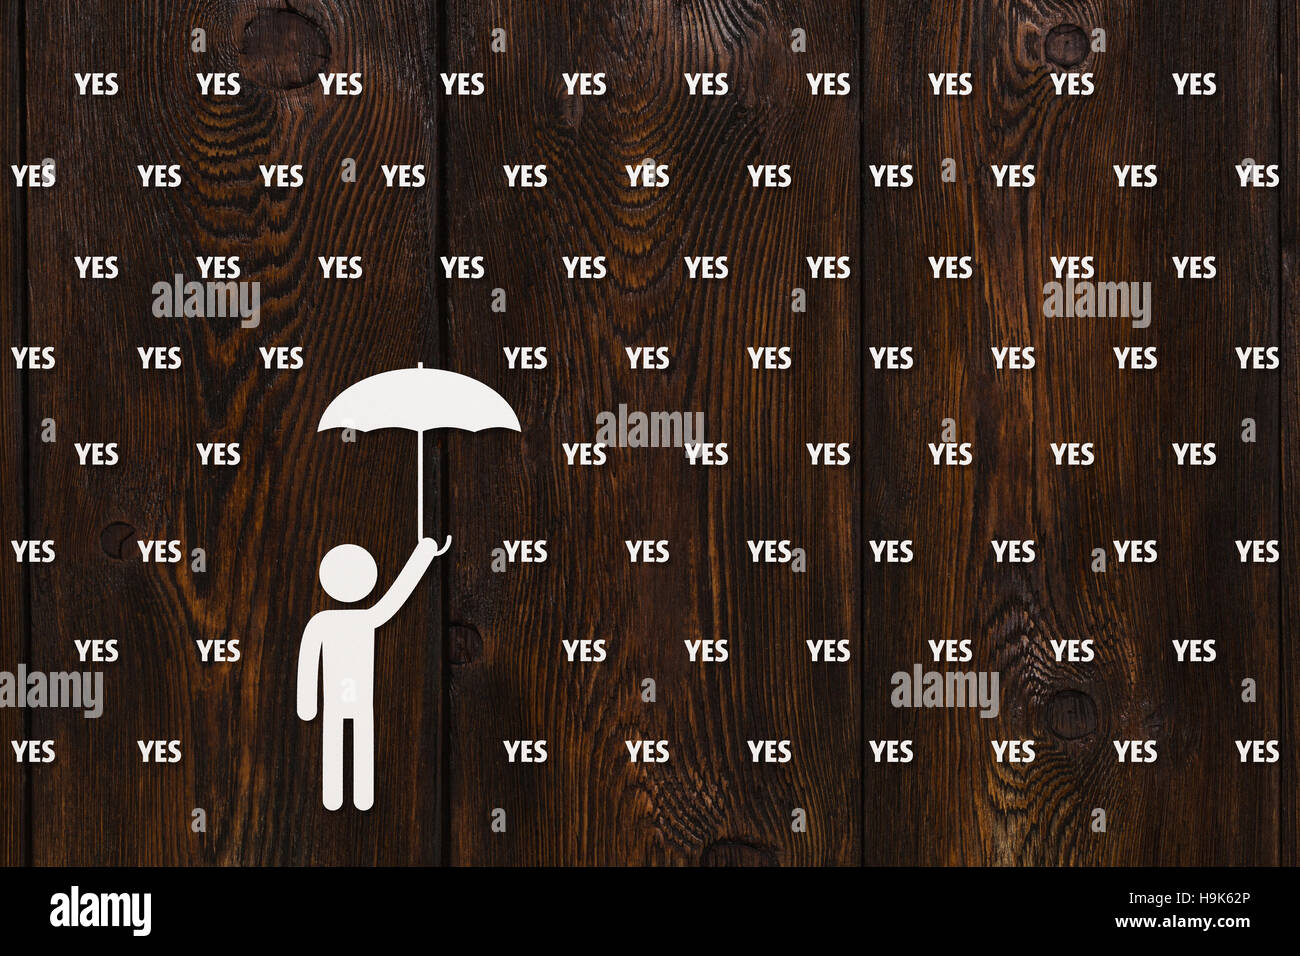 Man with umbrella standing in rain of words, abstract concept - Stock Image